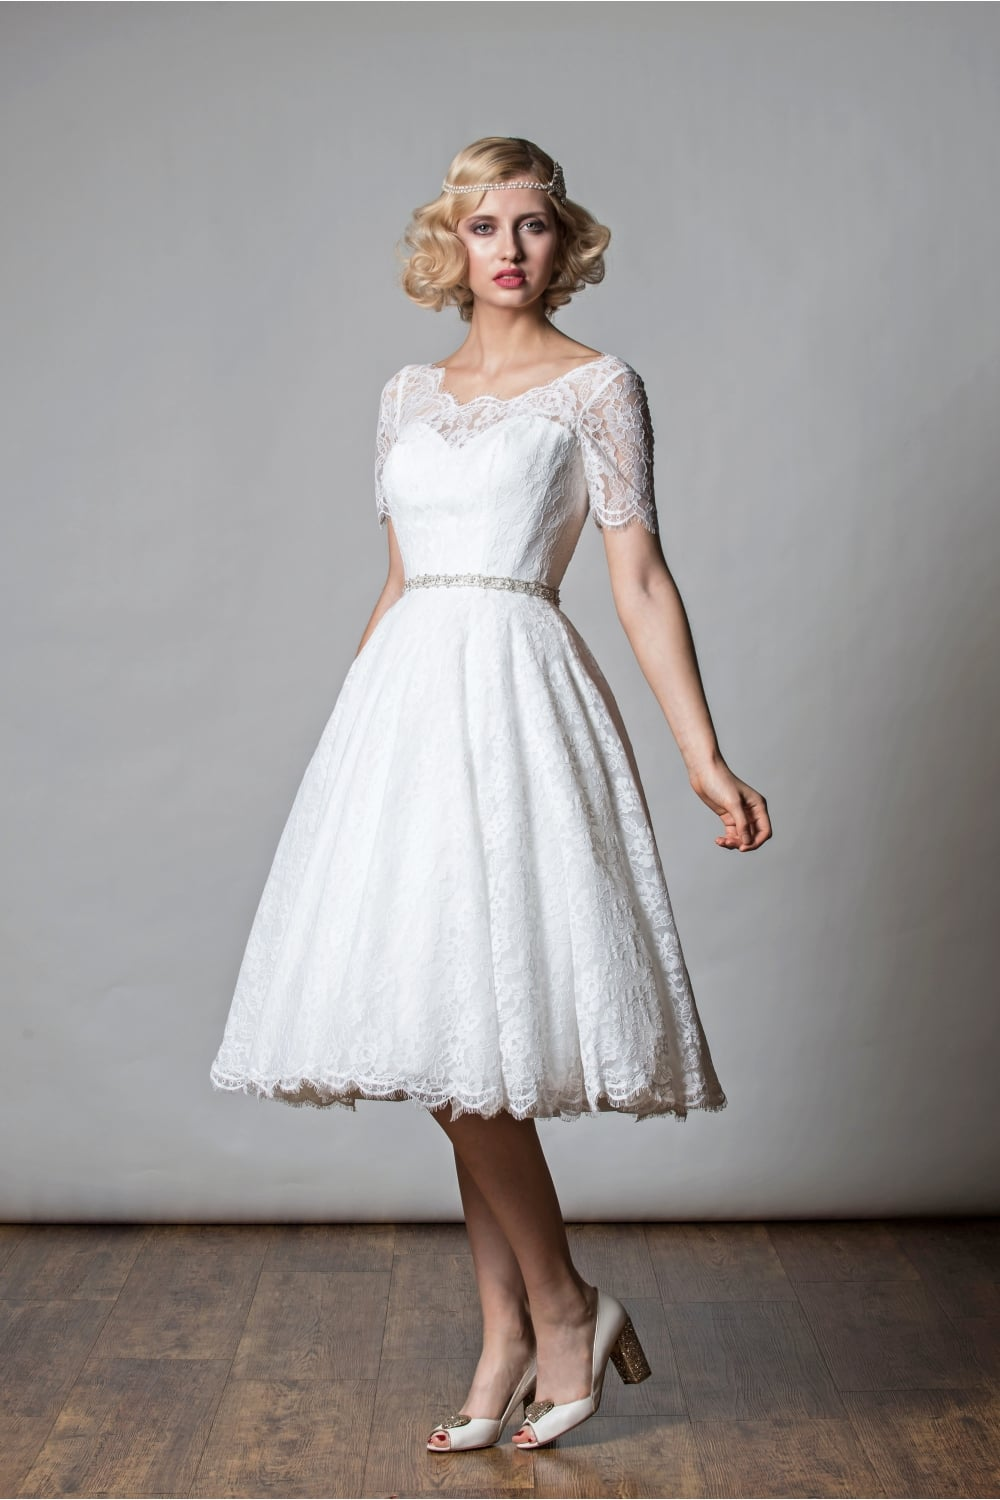 1920s bridesmaid dress styles